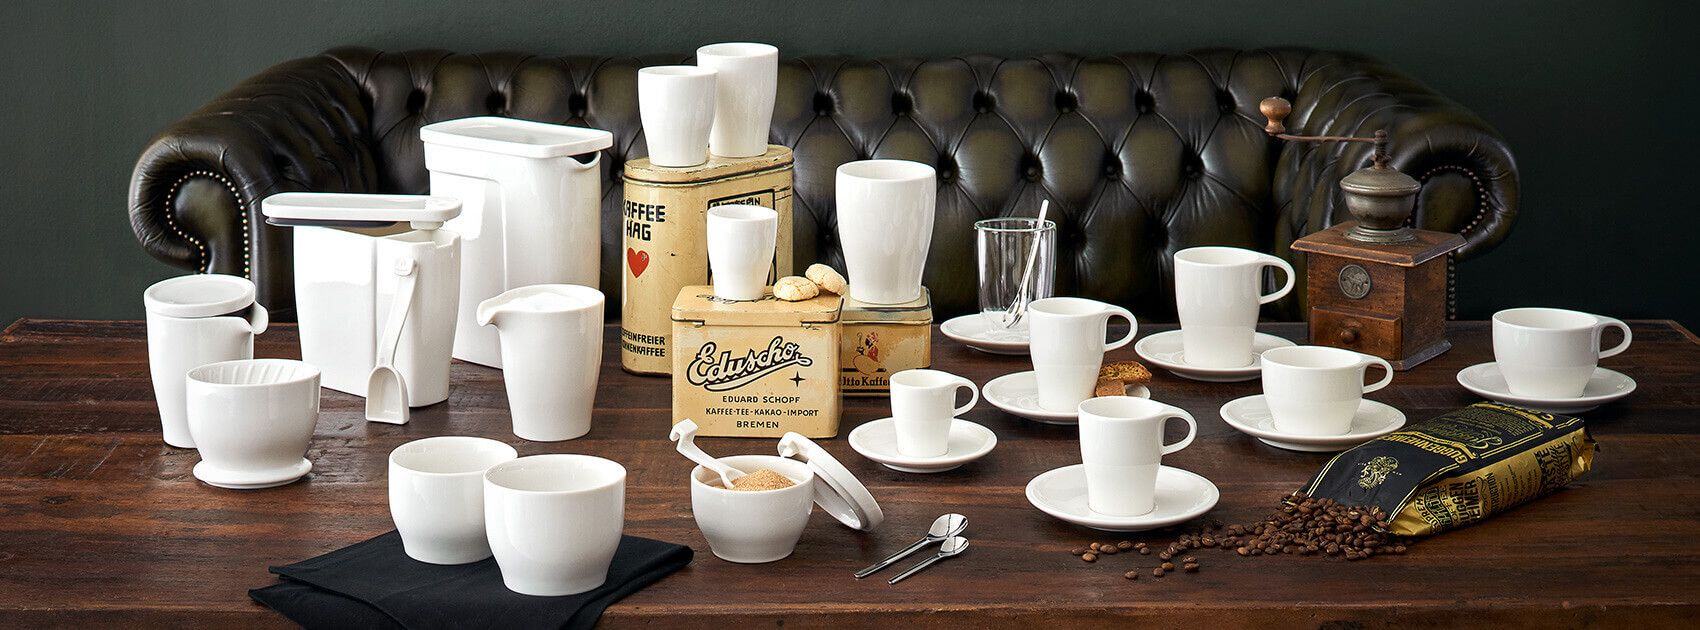 Villeroy boch melkkan coffee passion kopen cookinglife for Passion coffee